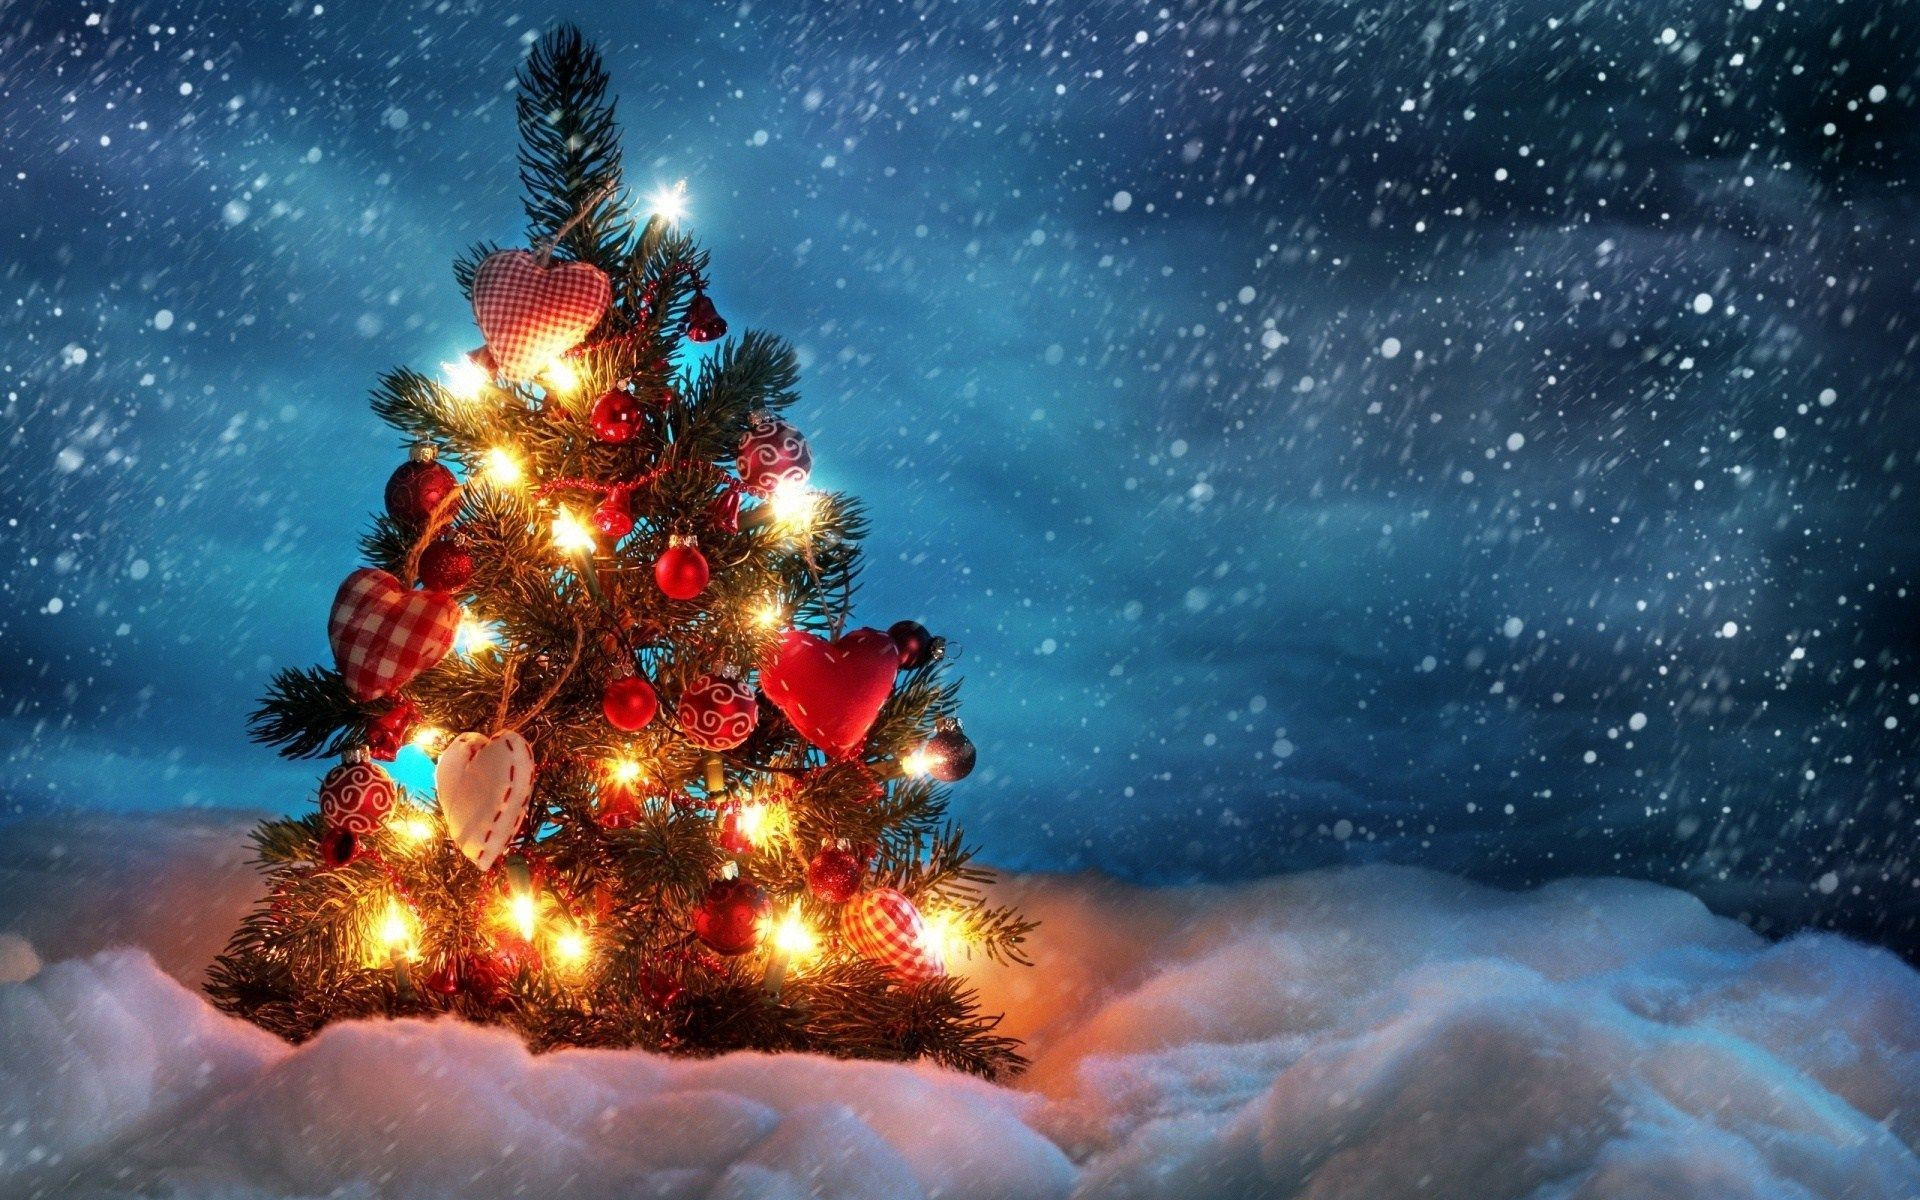 1920x1080 40 Free Animated Christmas Wallpaper for Desktop